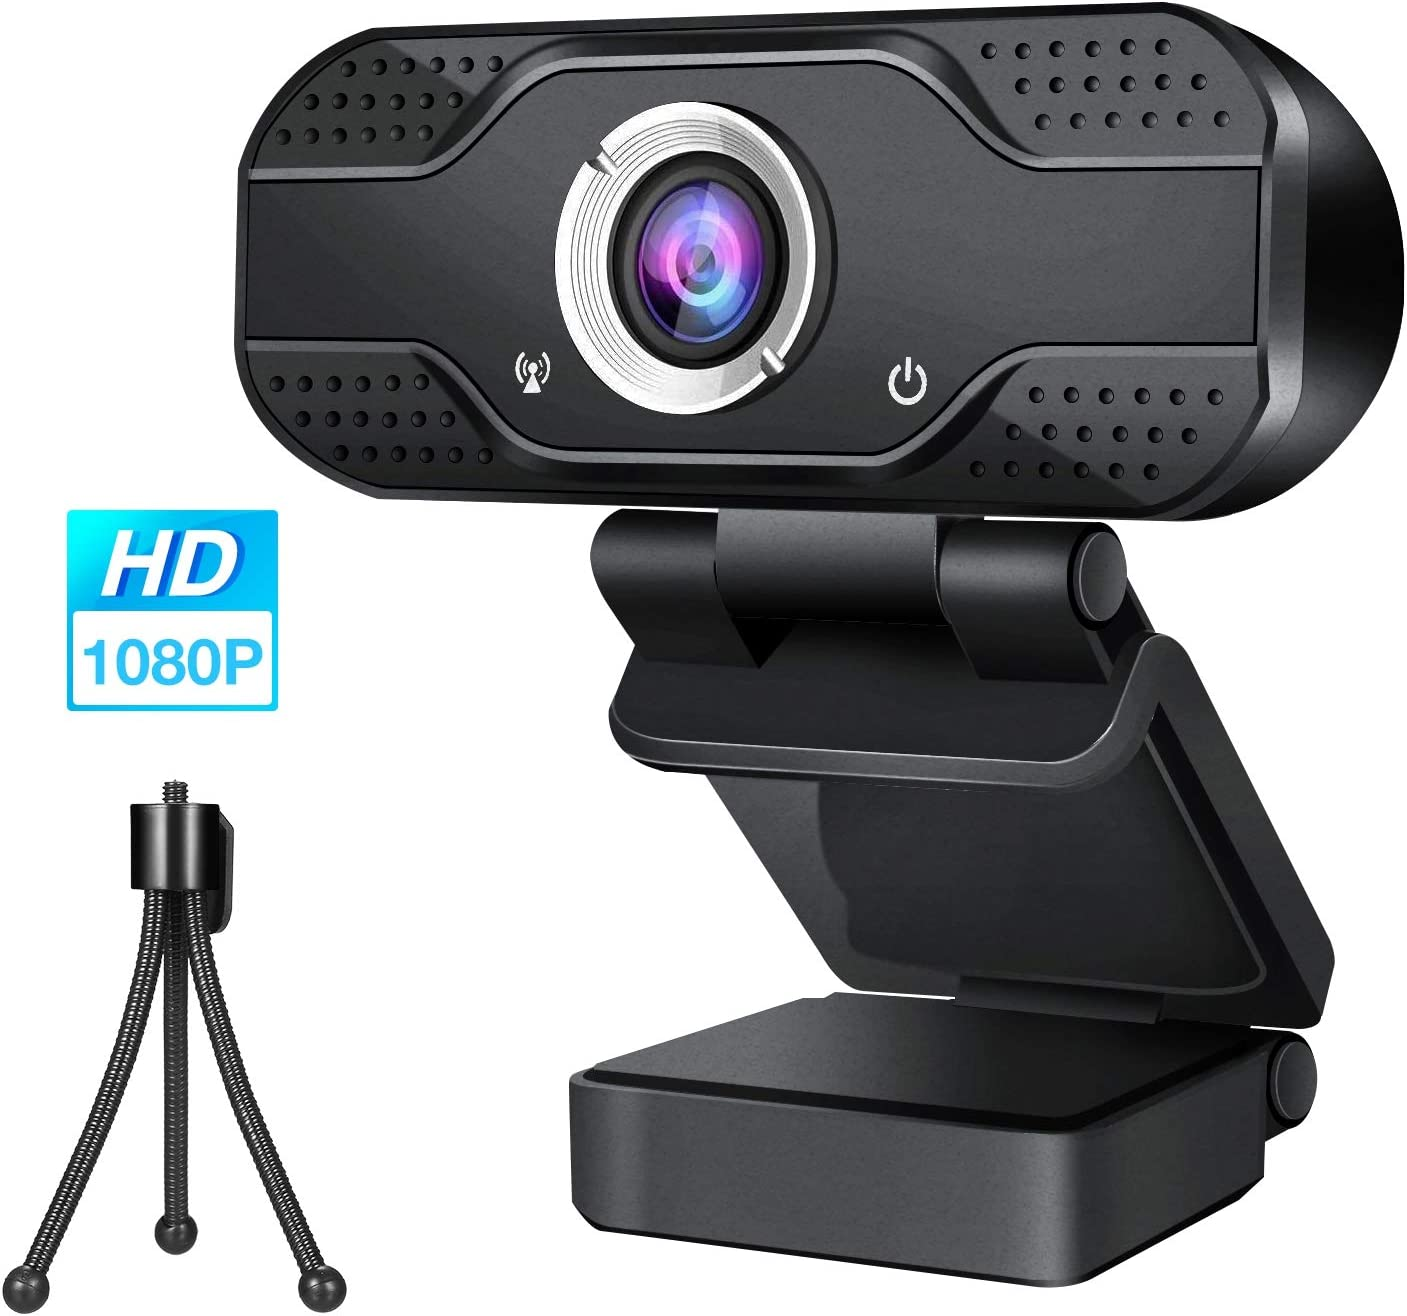 Webcam with Microphone,1080P HD Web Cam with Extra Tripod,USB PC Web Camera for Desktop/Laptop/Mac,Plug and Play,100-Degree Wide View Angle 30fps,Auto Focus Streaming Computer Camera for Video Calling